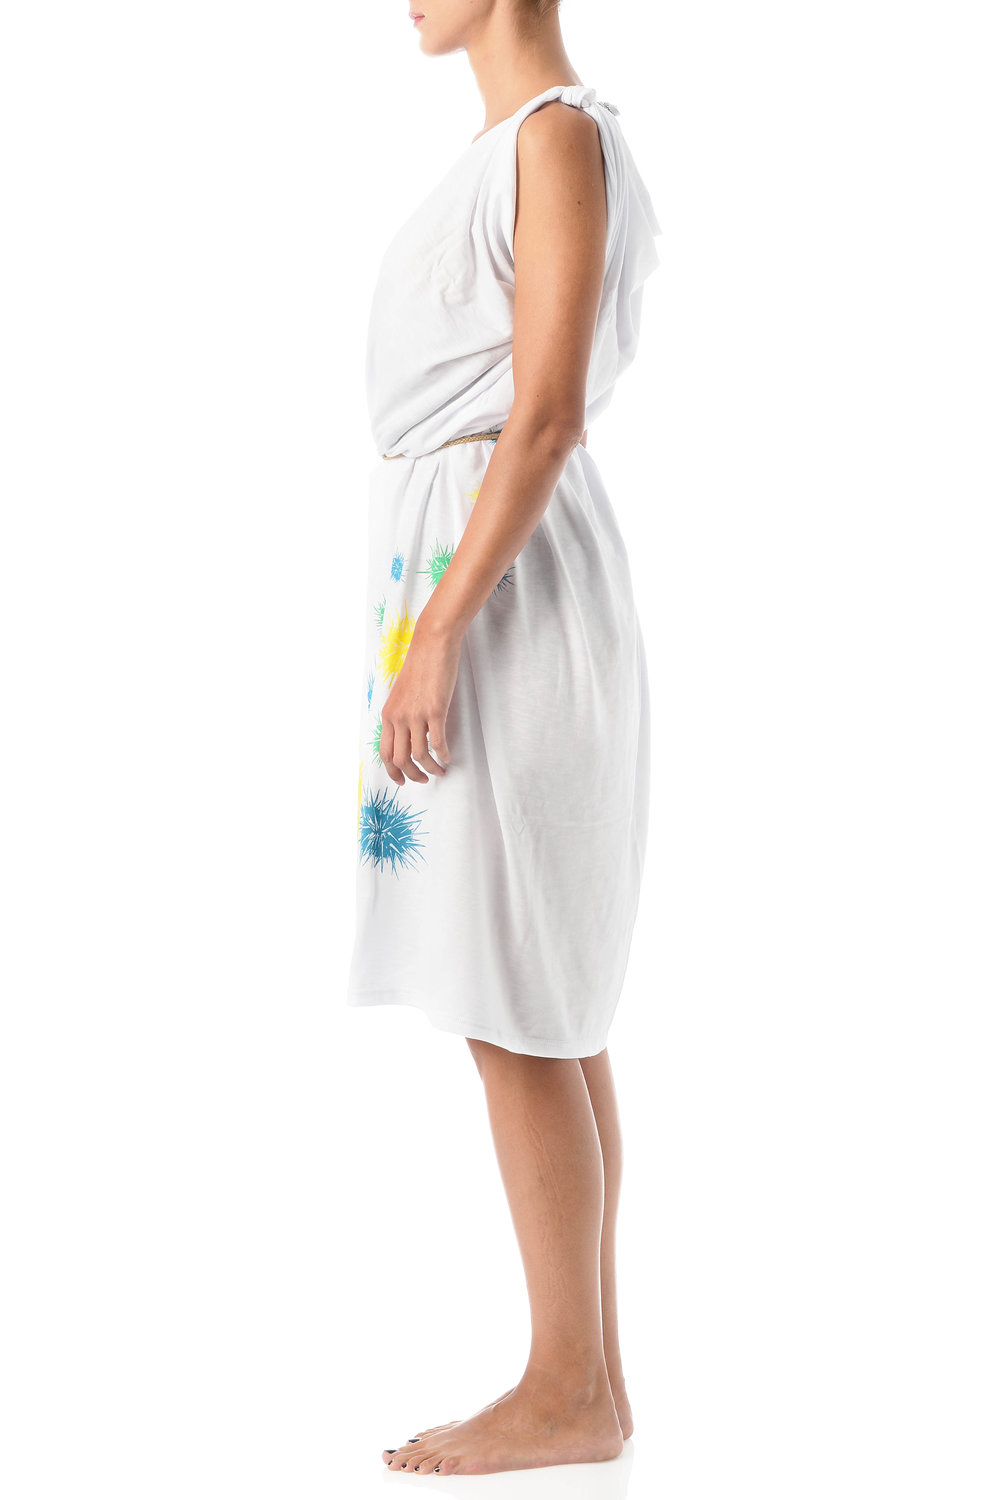 urchins-multi-color-design-deep-hem-dress-on-white-viscose-side.jpg